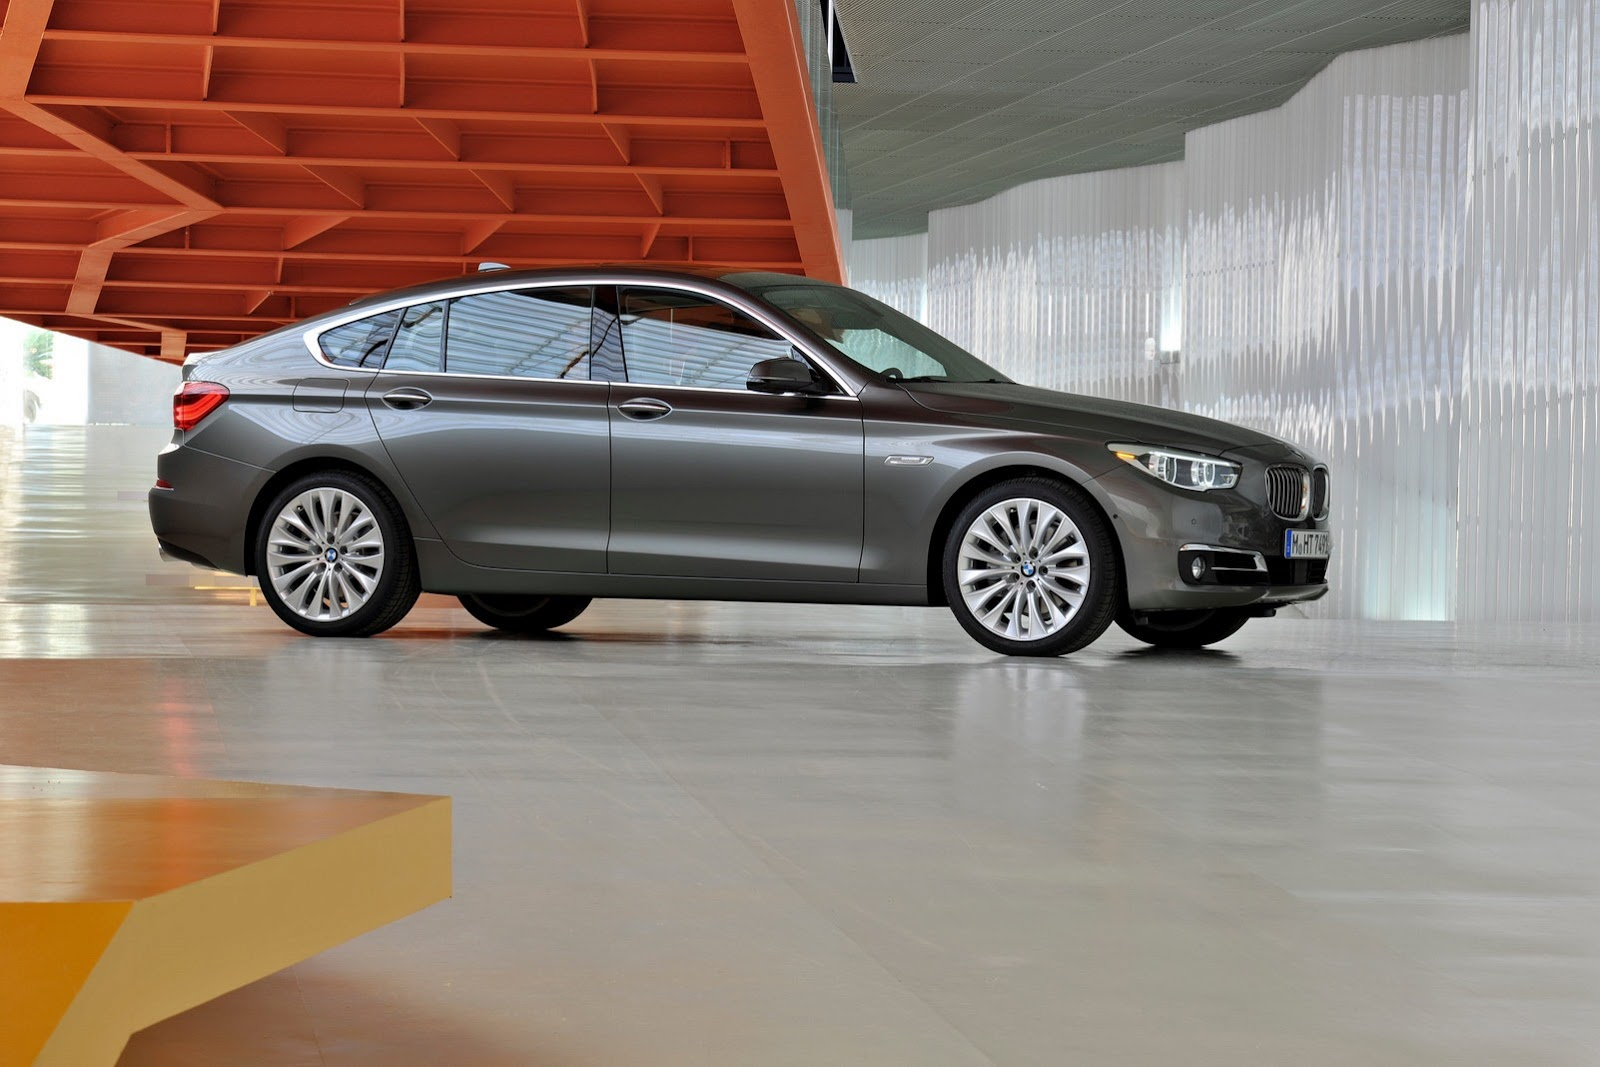 die another day second gen bmw 5 gt on its way carscoops. Black Bedroom Furniture Sets. Home Design Ideas